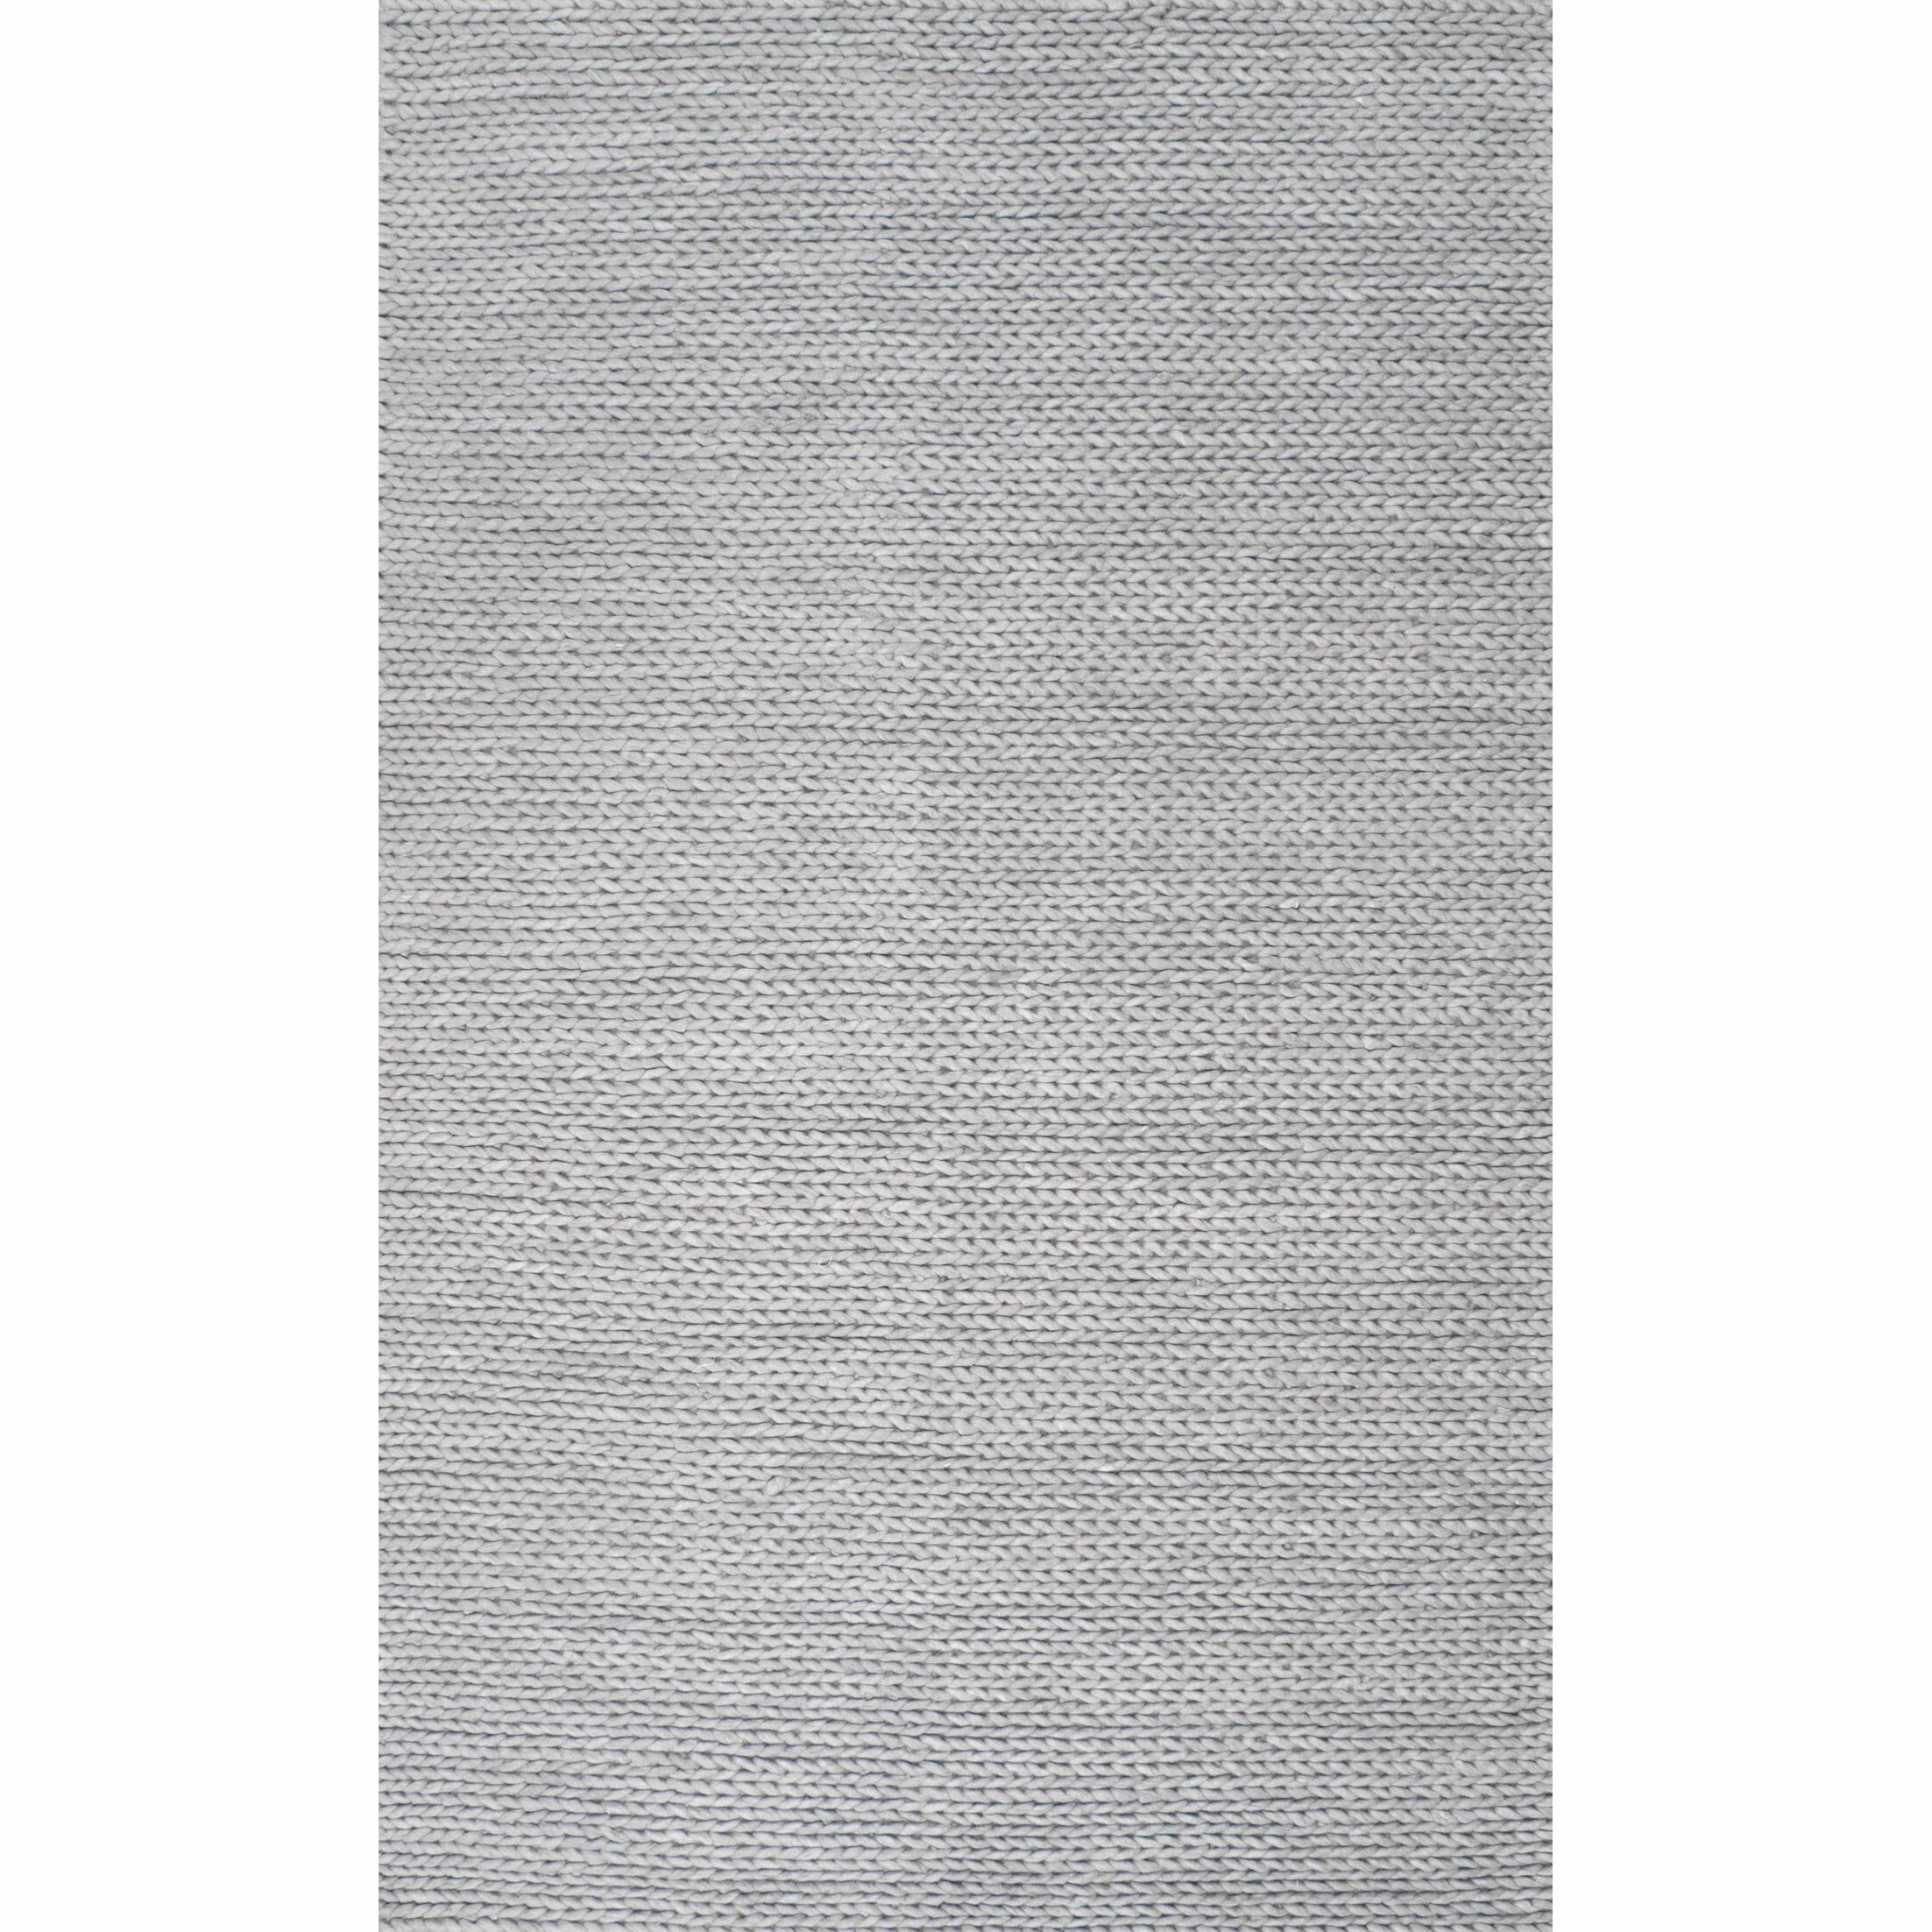 Makenzie Woolen Cable Hand-Woven Light Gray Area Rug Rug Size: Rectangle 6' x 6'